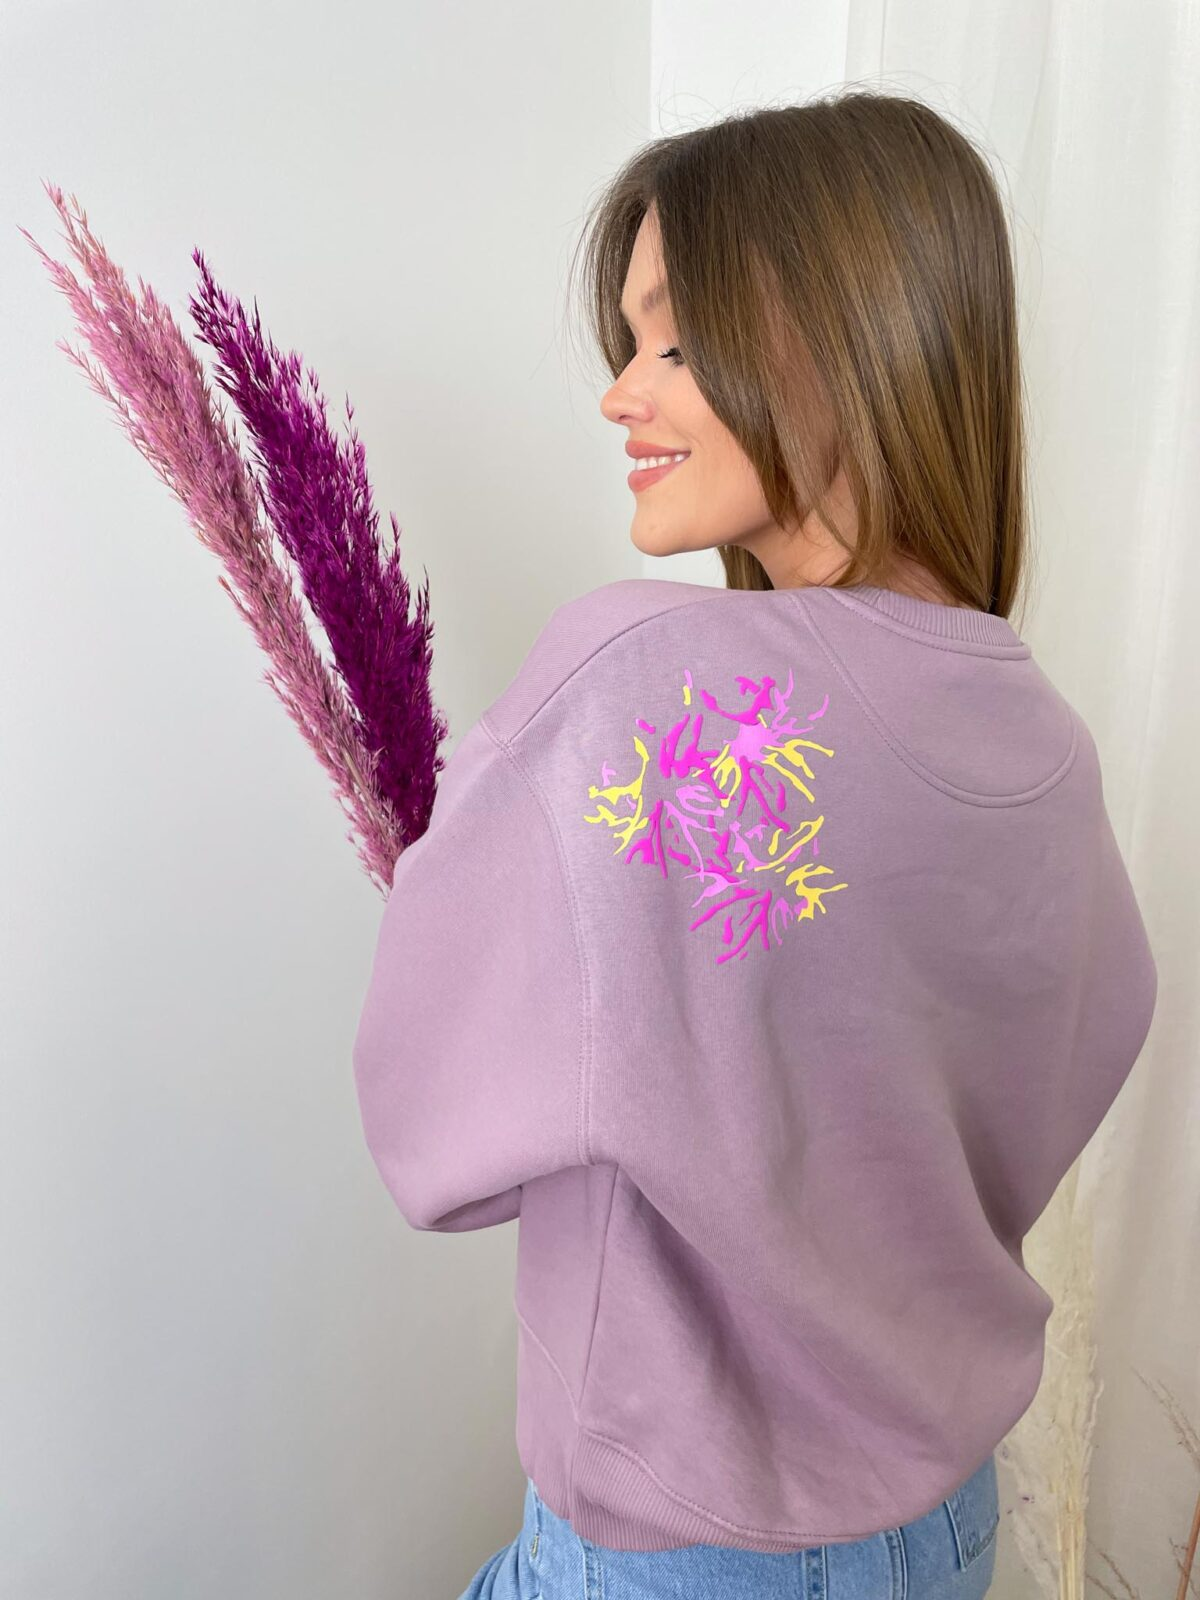 woman with a lilac sweater